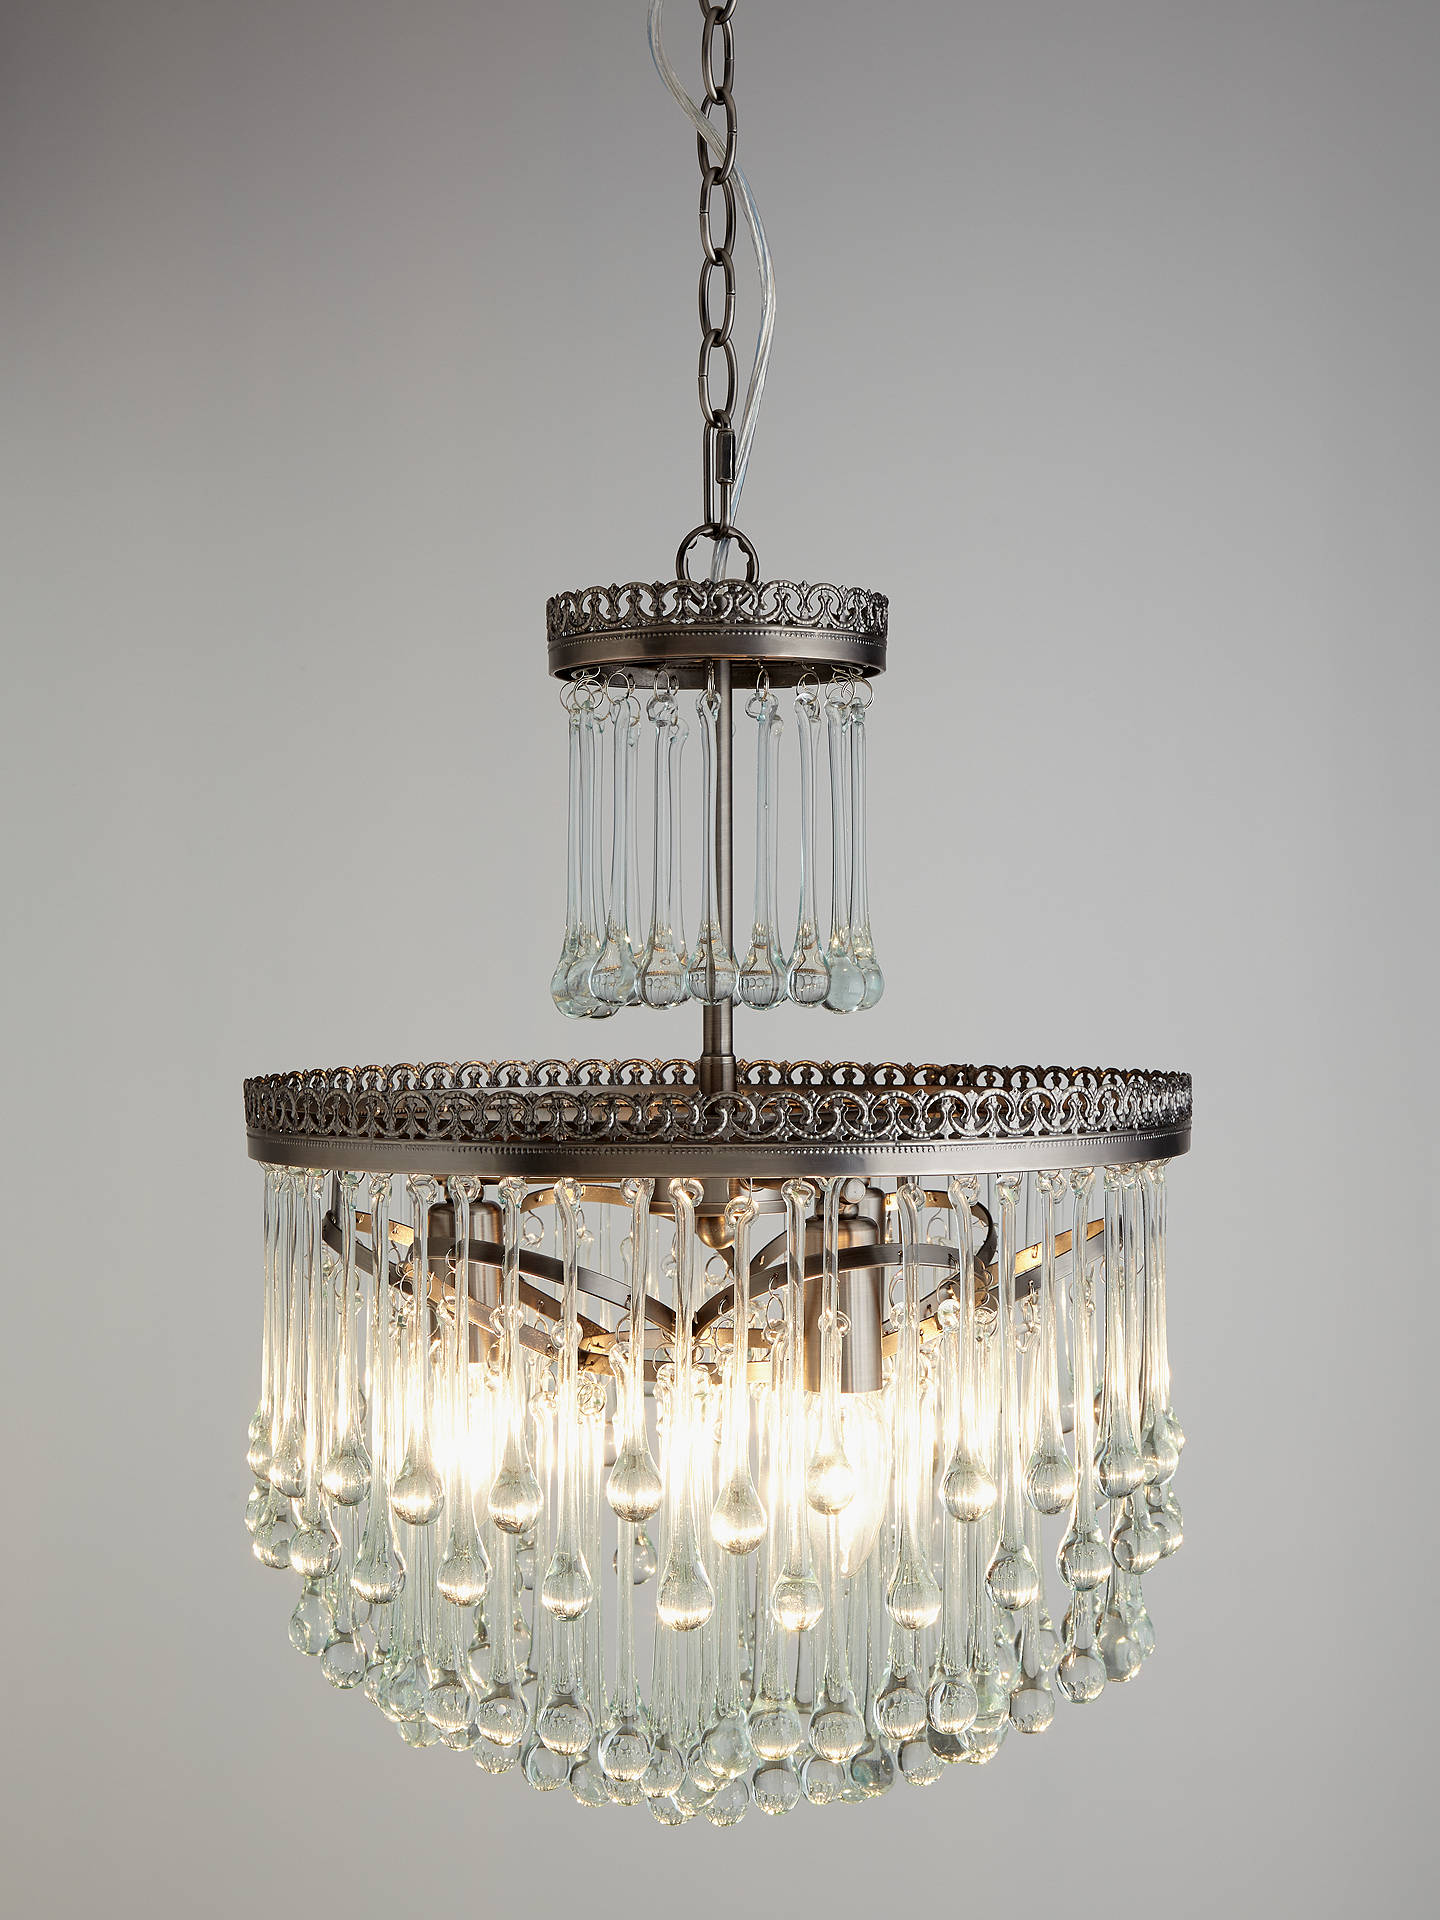 A Guide to Crystal Chandelier Glass Ideas & Advice | Lamps